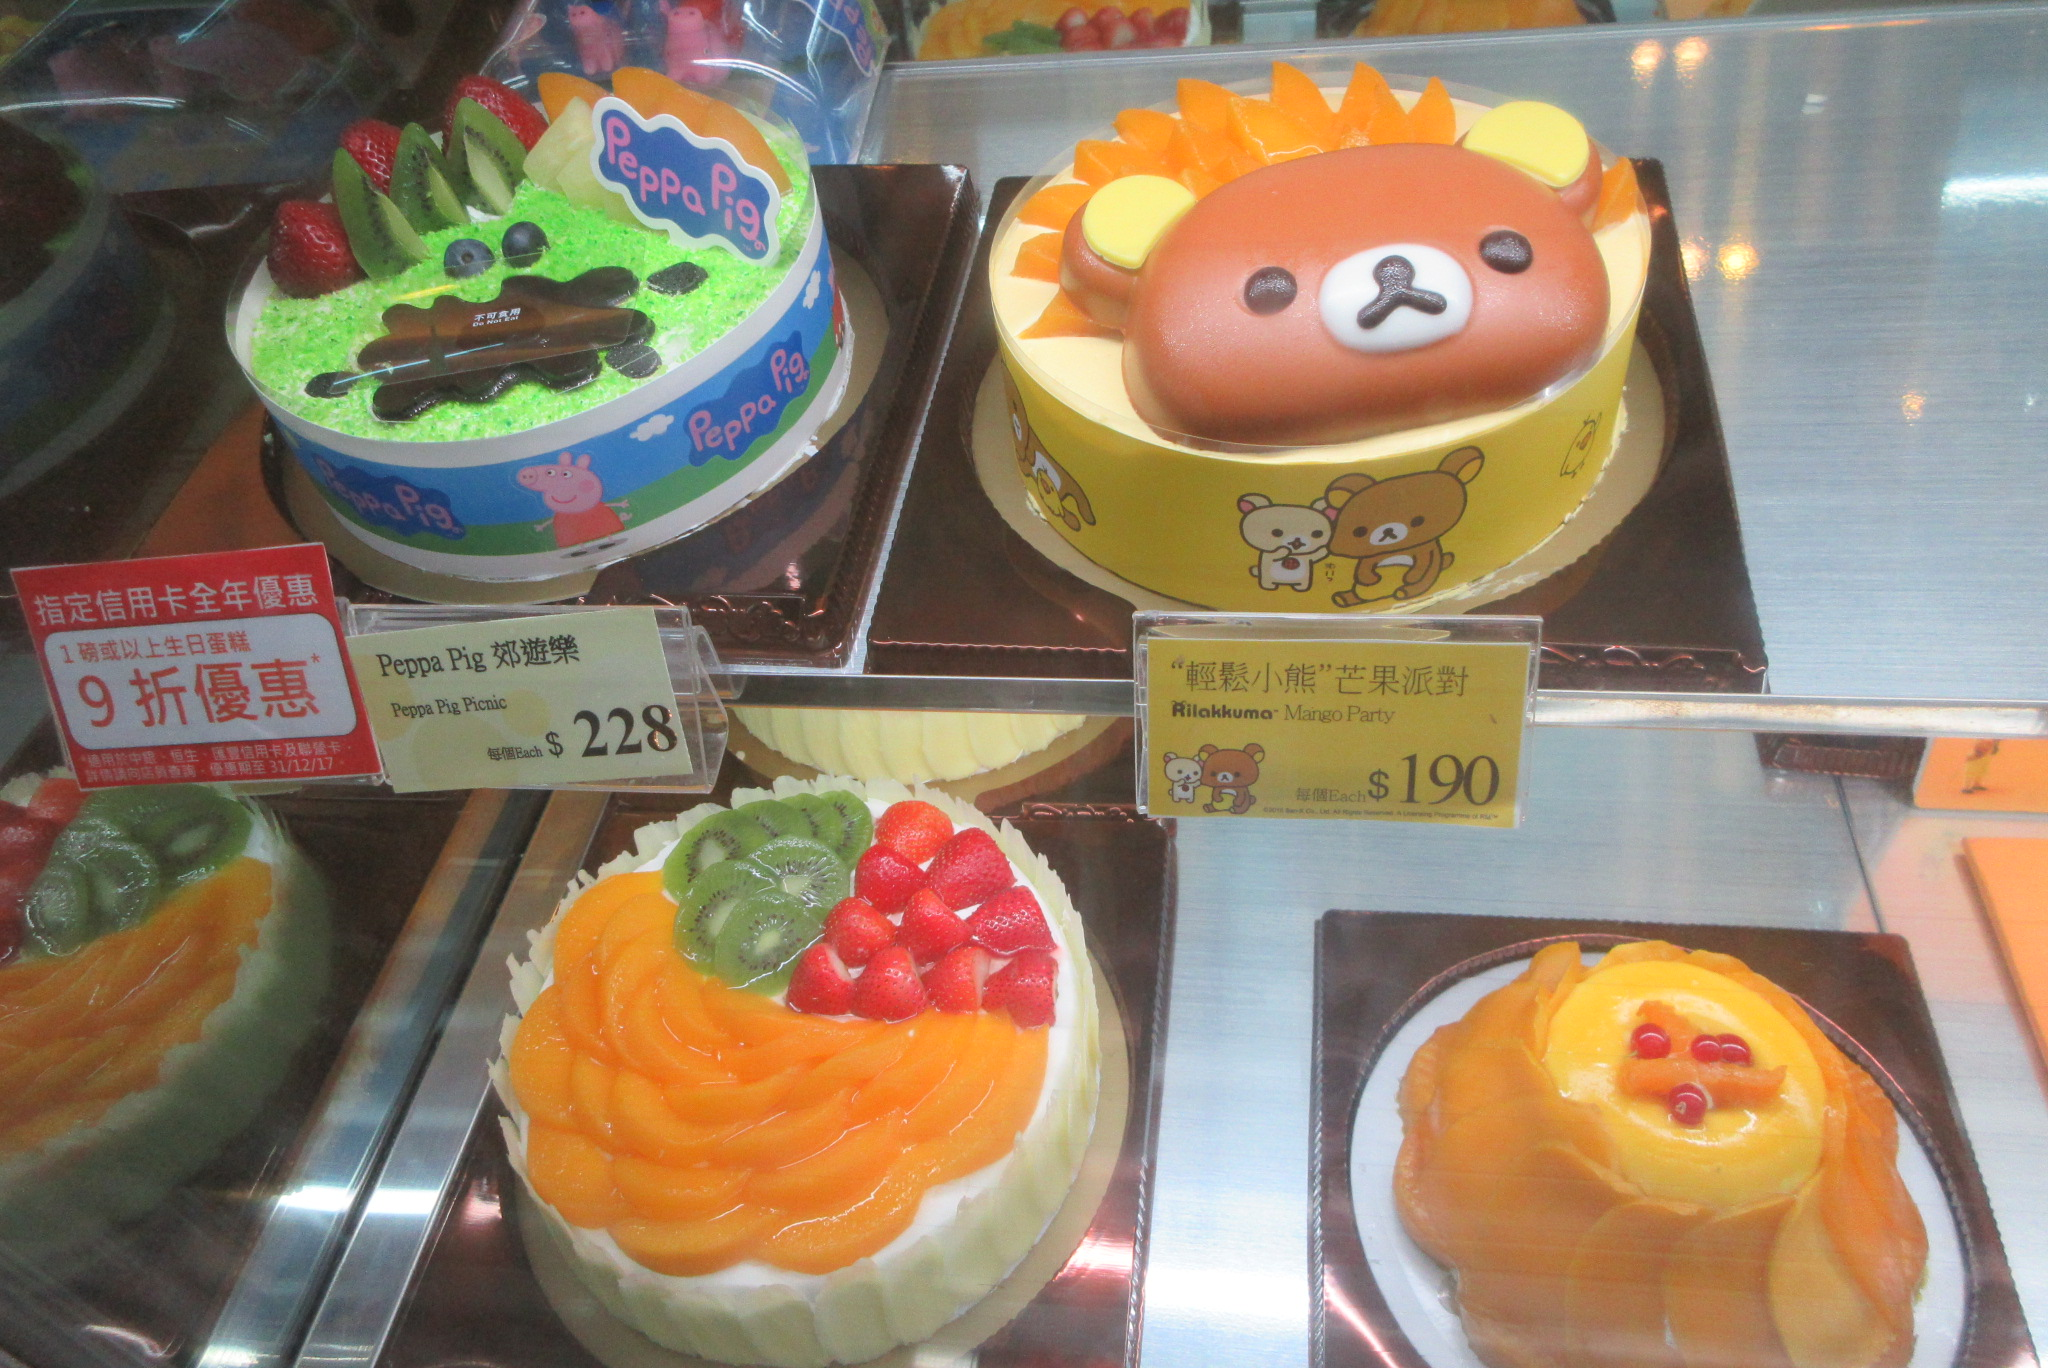 Filehk Yuen Long Saint Honore Cake Shop Food Display July